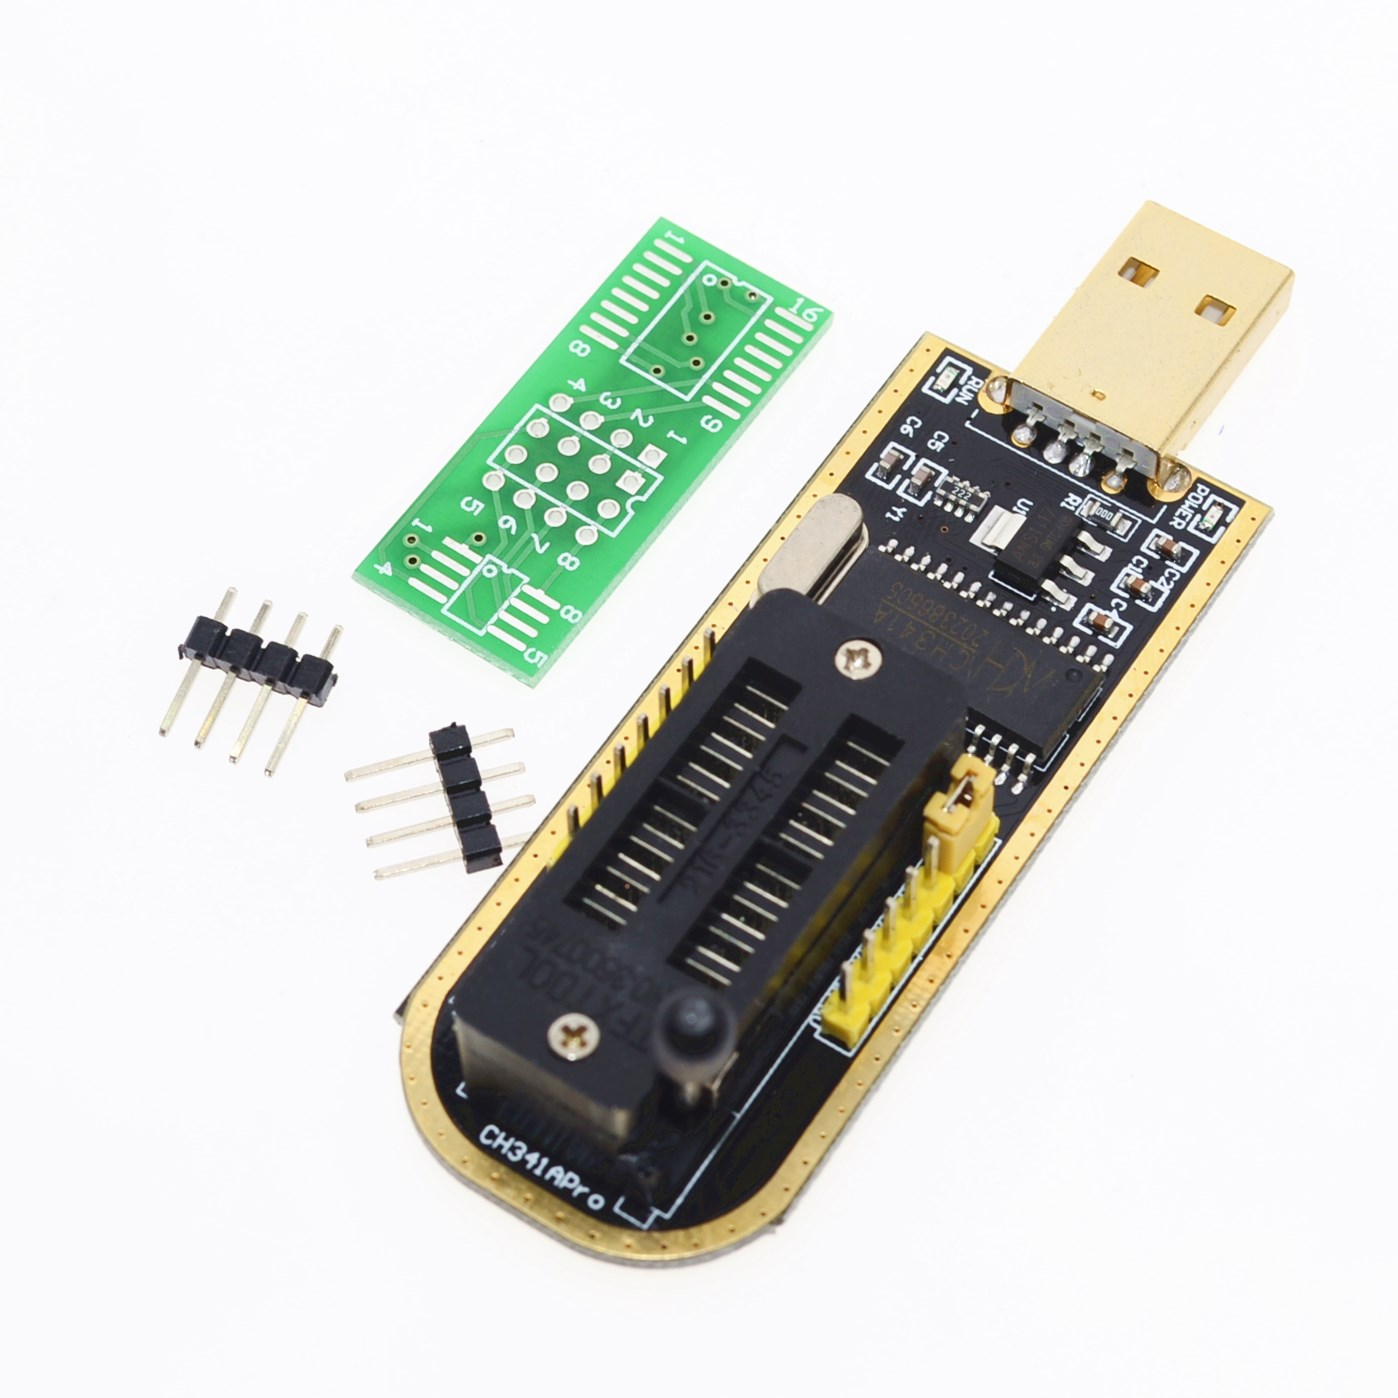 CH341A 24 25 Series EEPROM Flash BIOS font b USB b font Programmer with Software Driver